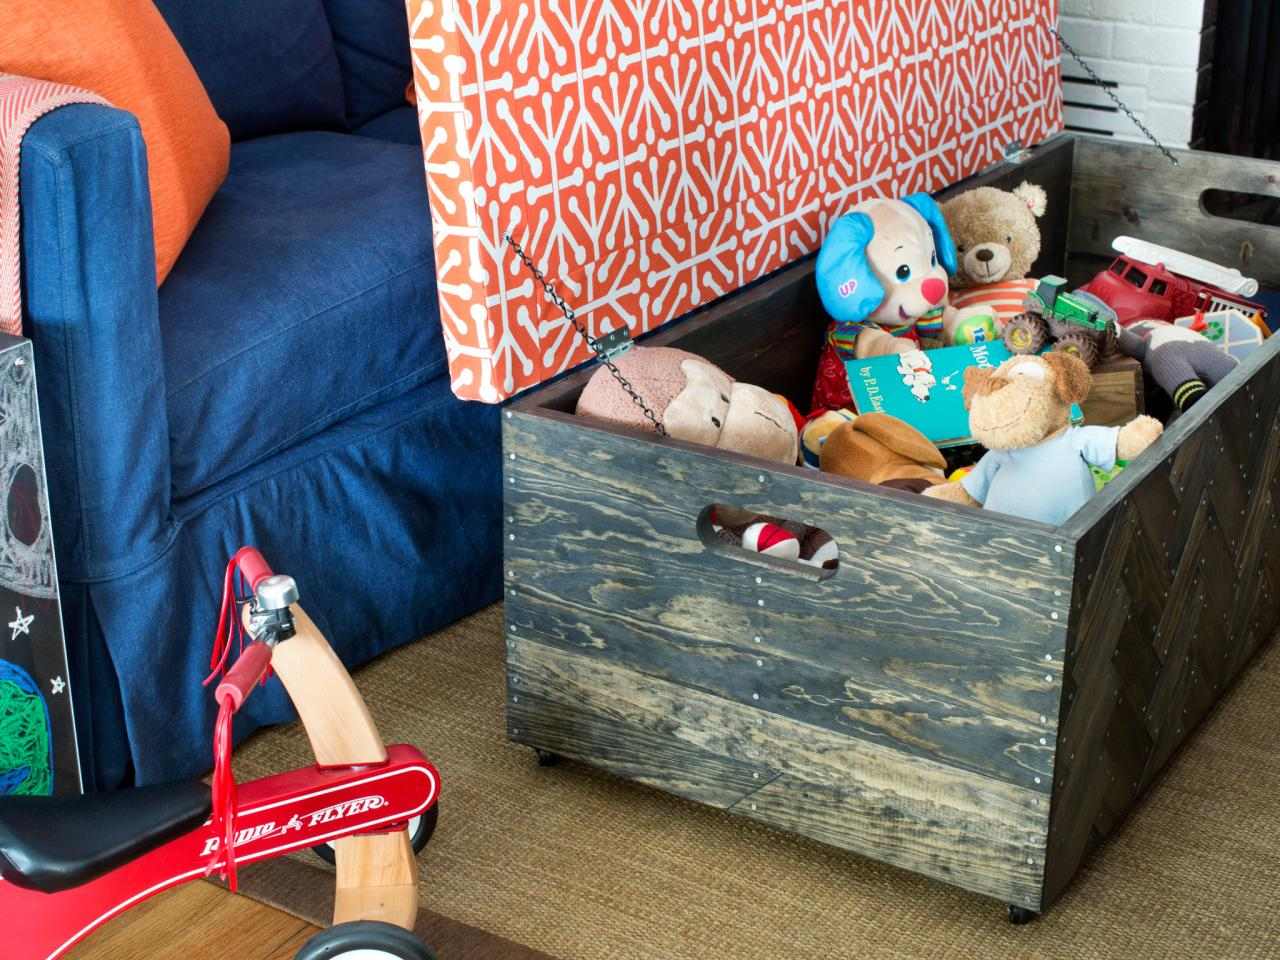 Kids Room With Toys 11 tips for keeping kids' toys organized | hgtv